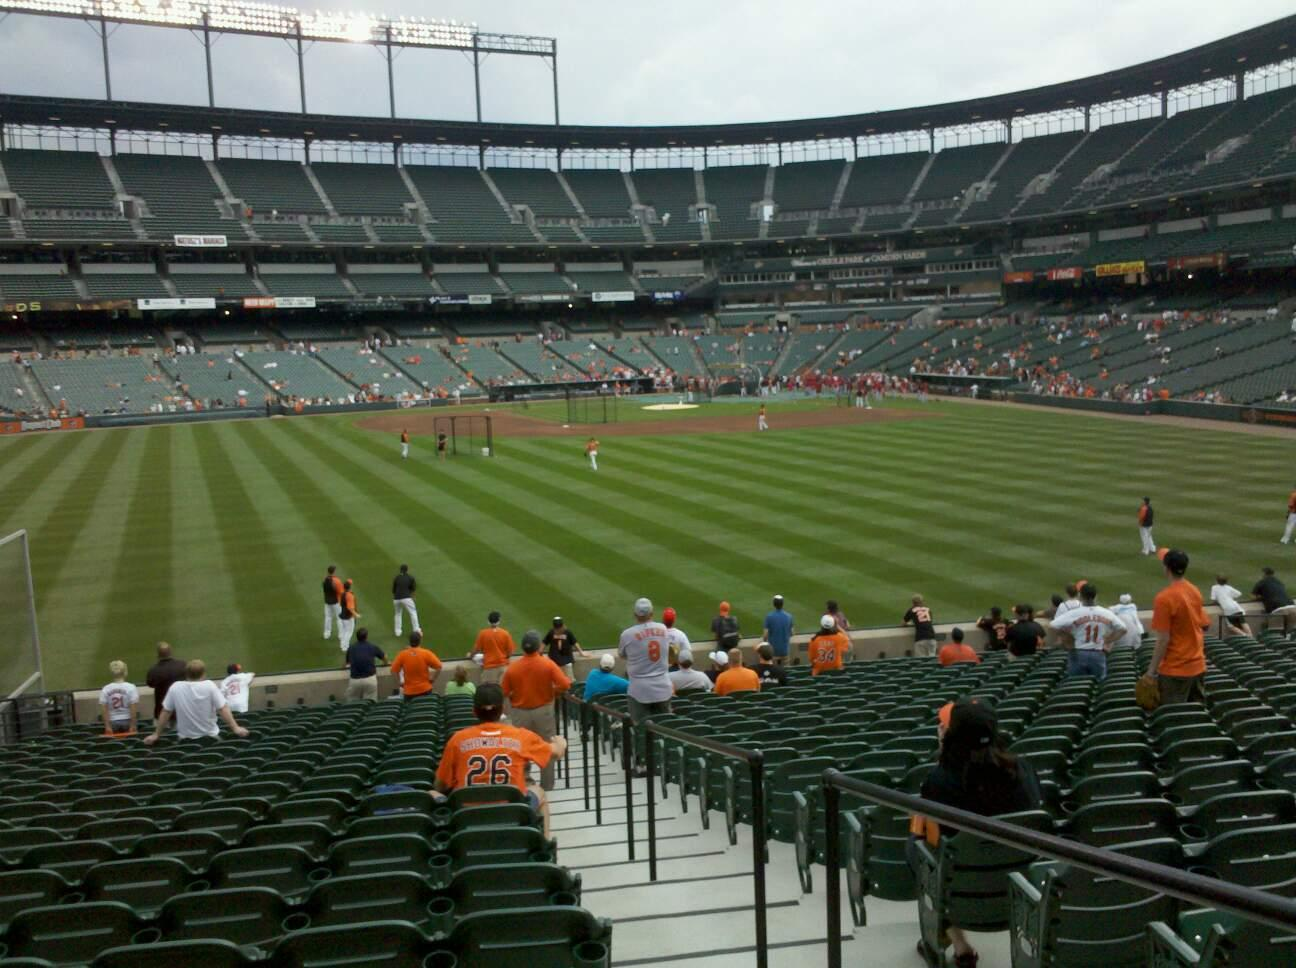 Oriole Park at Camden Yards Section 87 Row 24 Seat 1